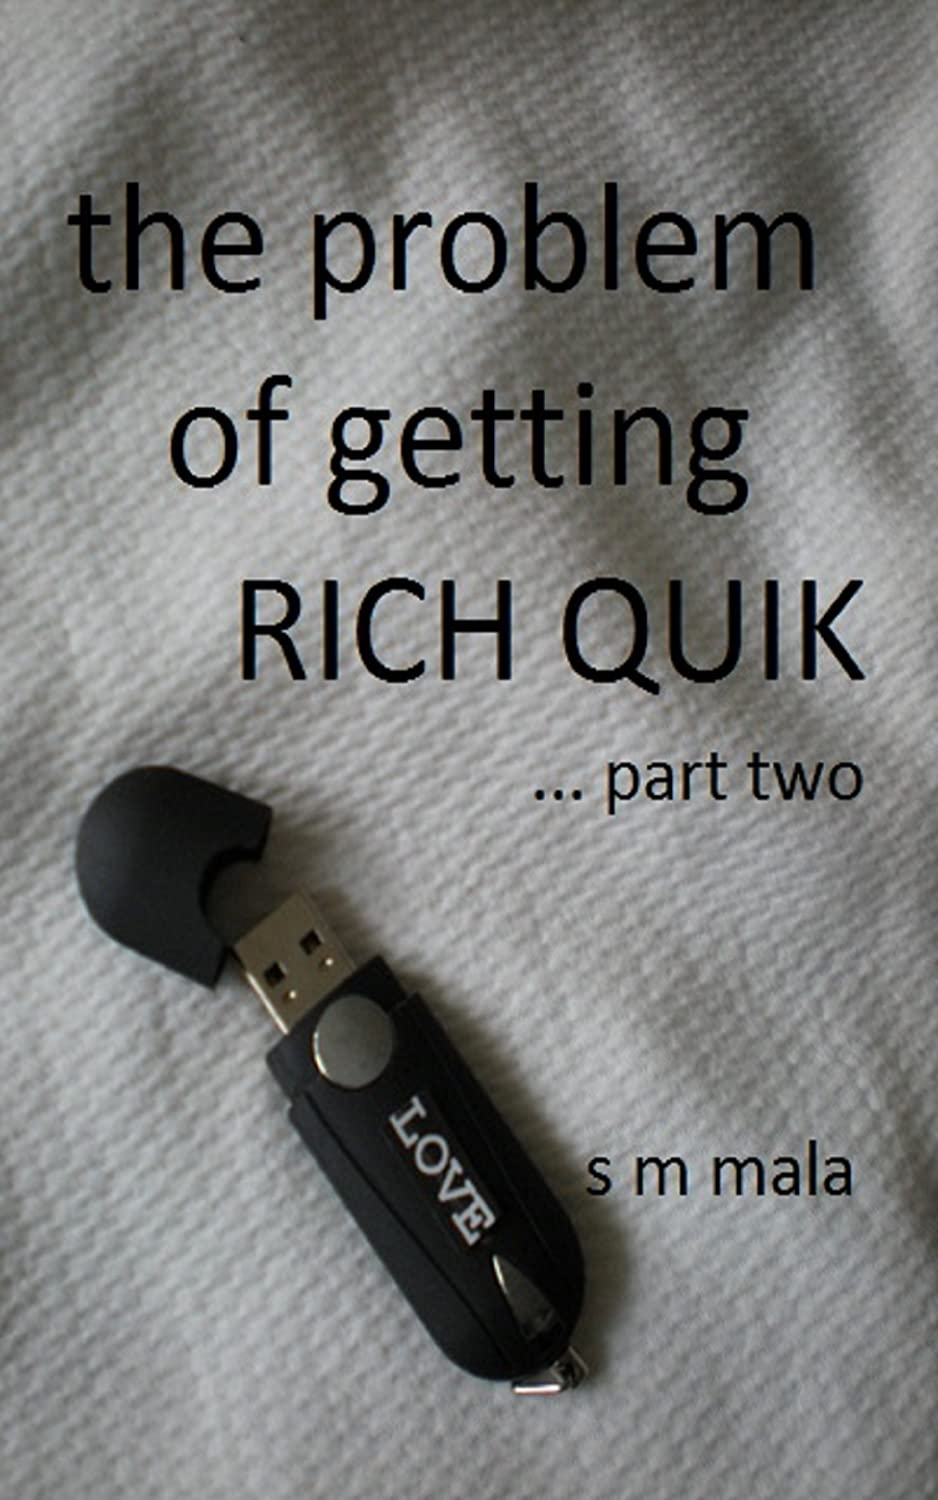 Problem-of-getting-rich-quik-2-Oct-2013-pix-smaller